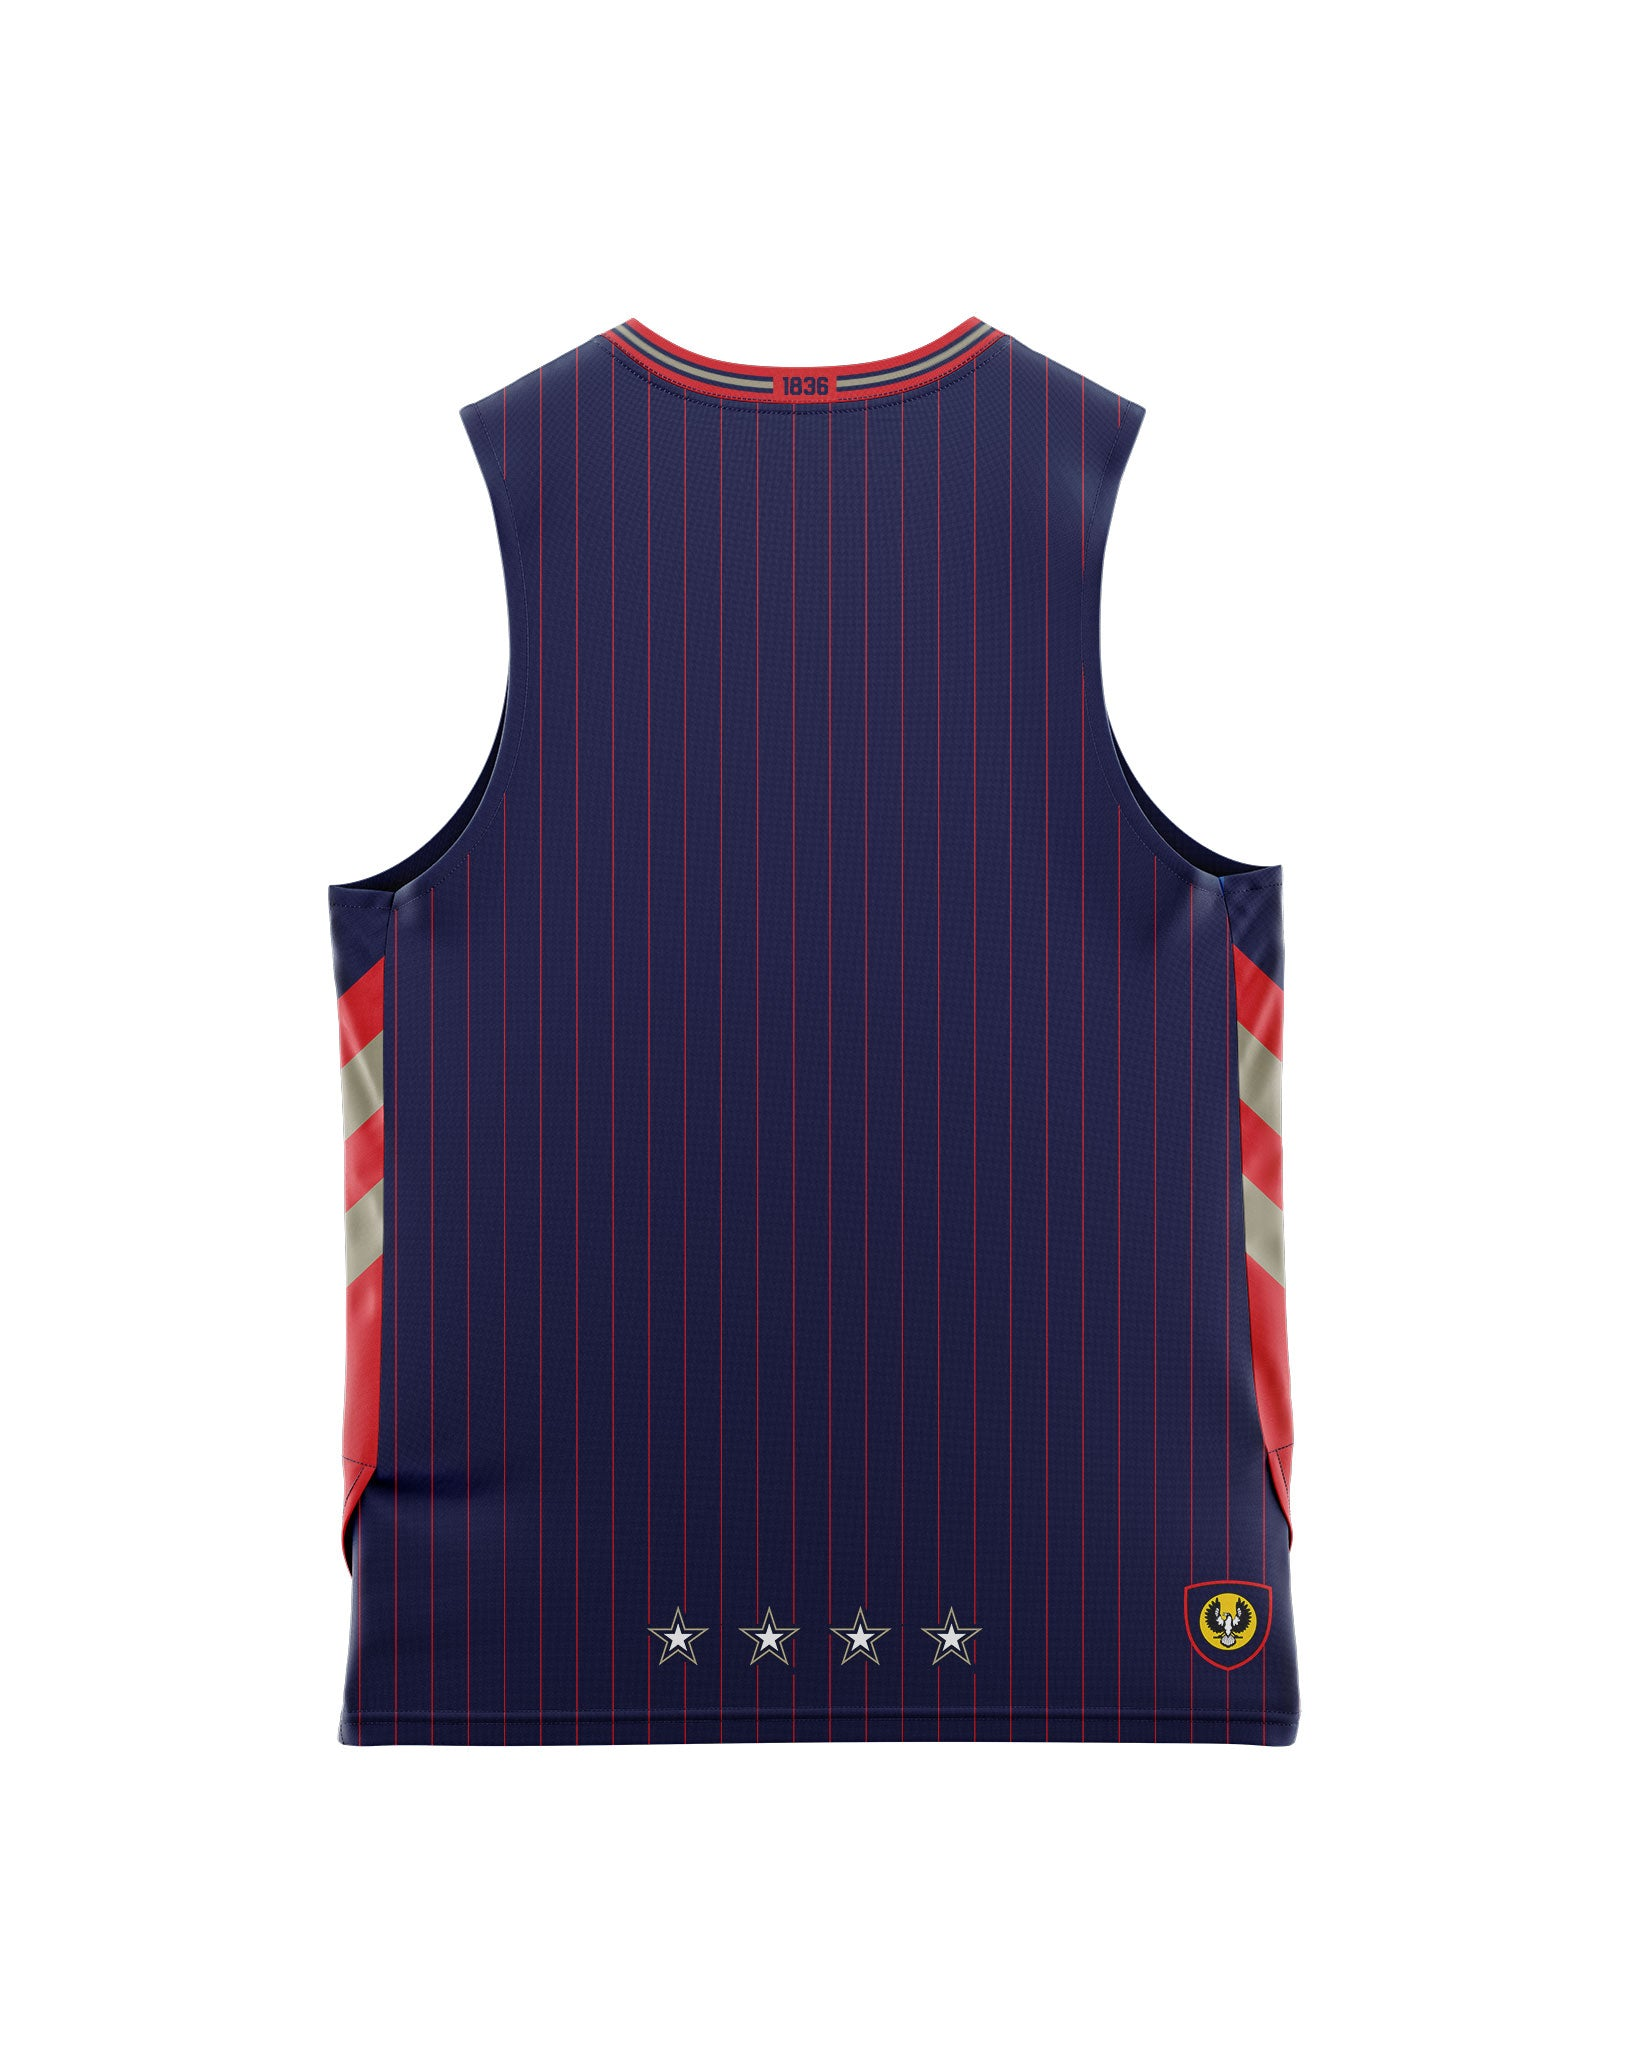 Adelaide 36ers 20/21 Infant Authentic Home Jersey